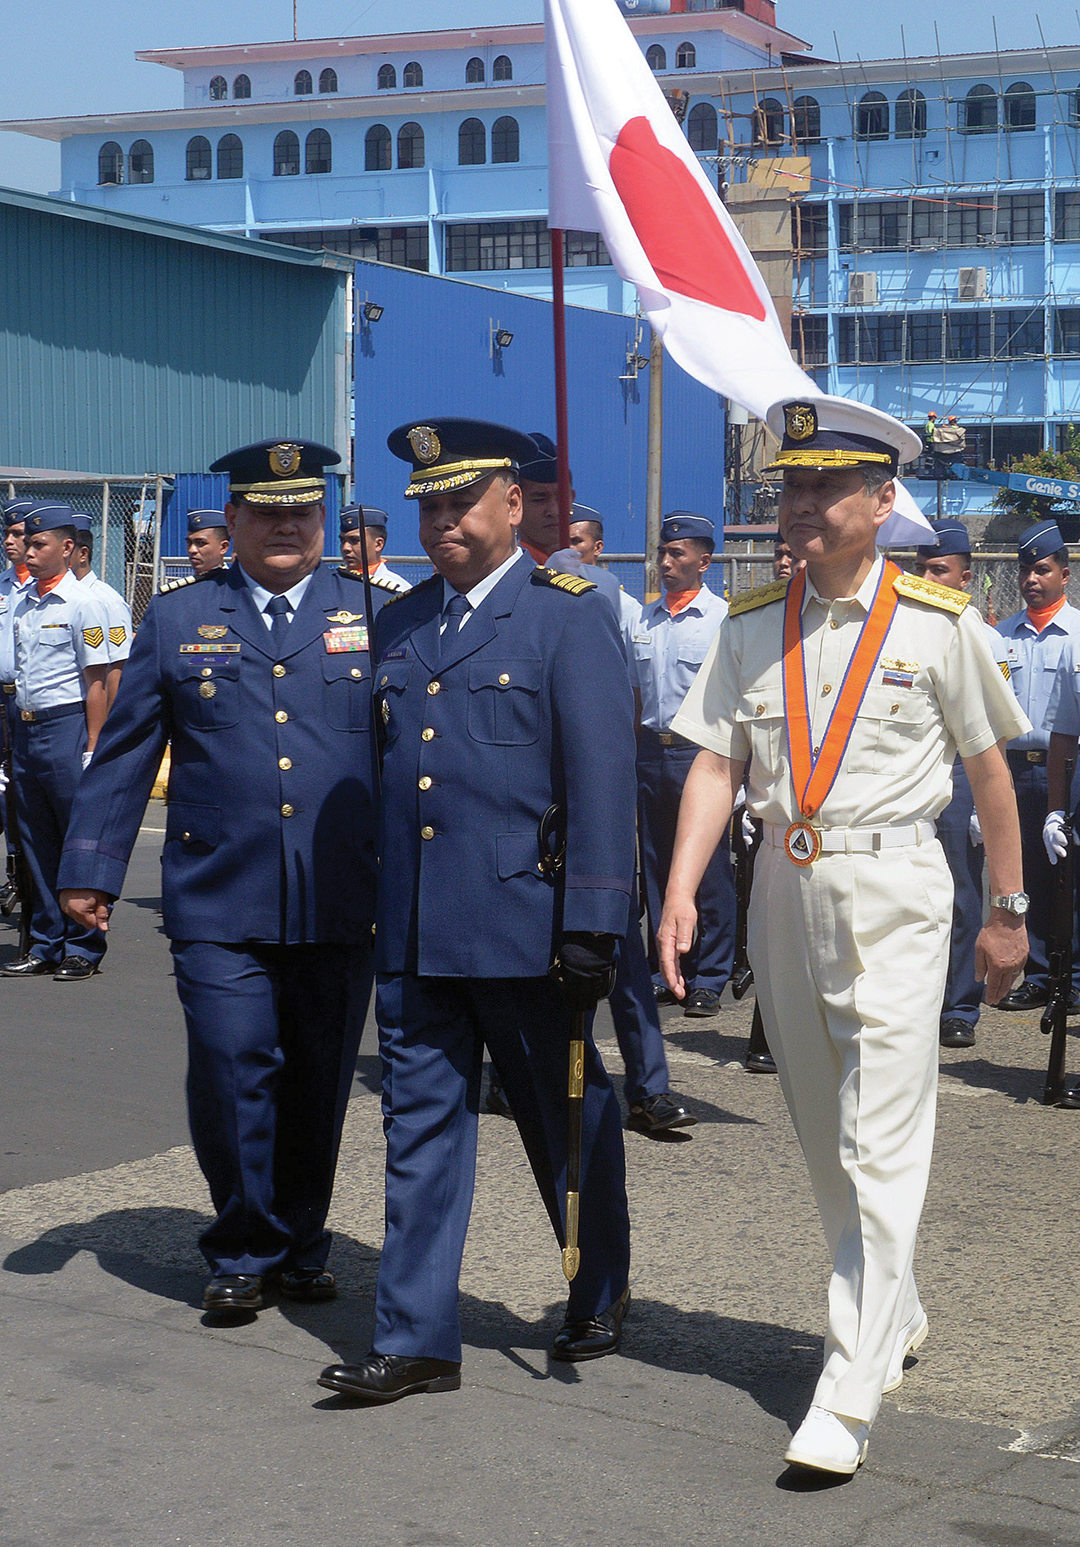 Adm. Yuji Sato, right, commander of Japan's Coast Guard, walks with senior Philippine Coast Guard personnel at Manila headquarters in May 2015. The two nations engaged in bilateral talks during the 5th Maritime Law Enforcement exercise to combat piracy and armed robbery at sea. AFP/GETTY IMAGES